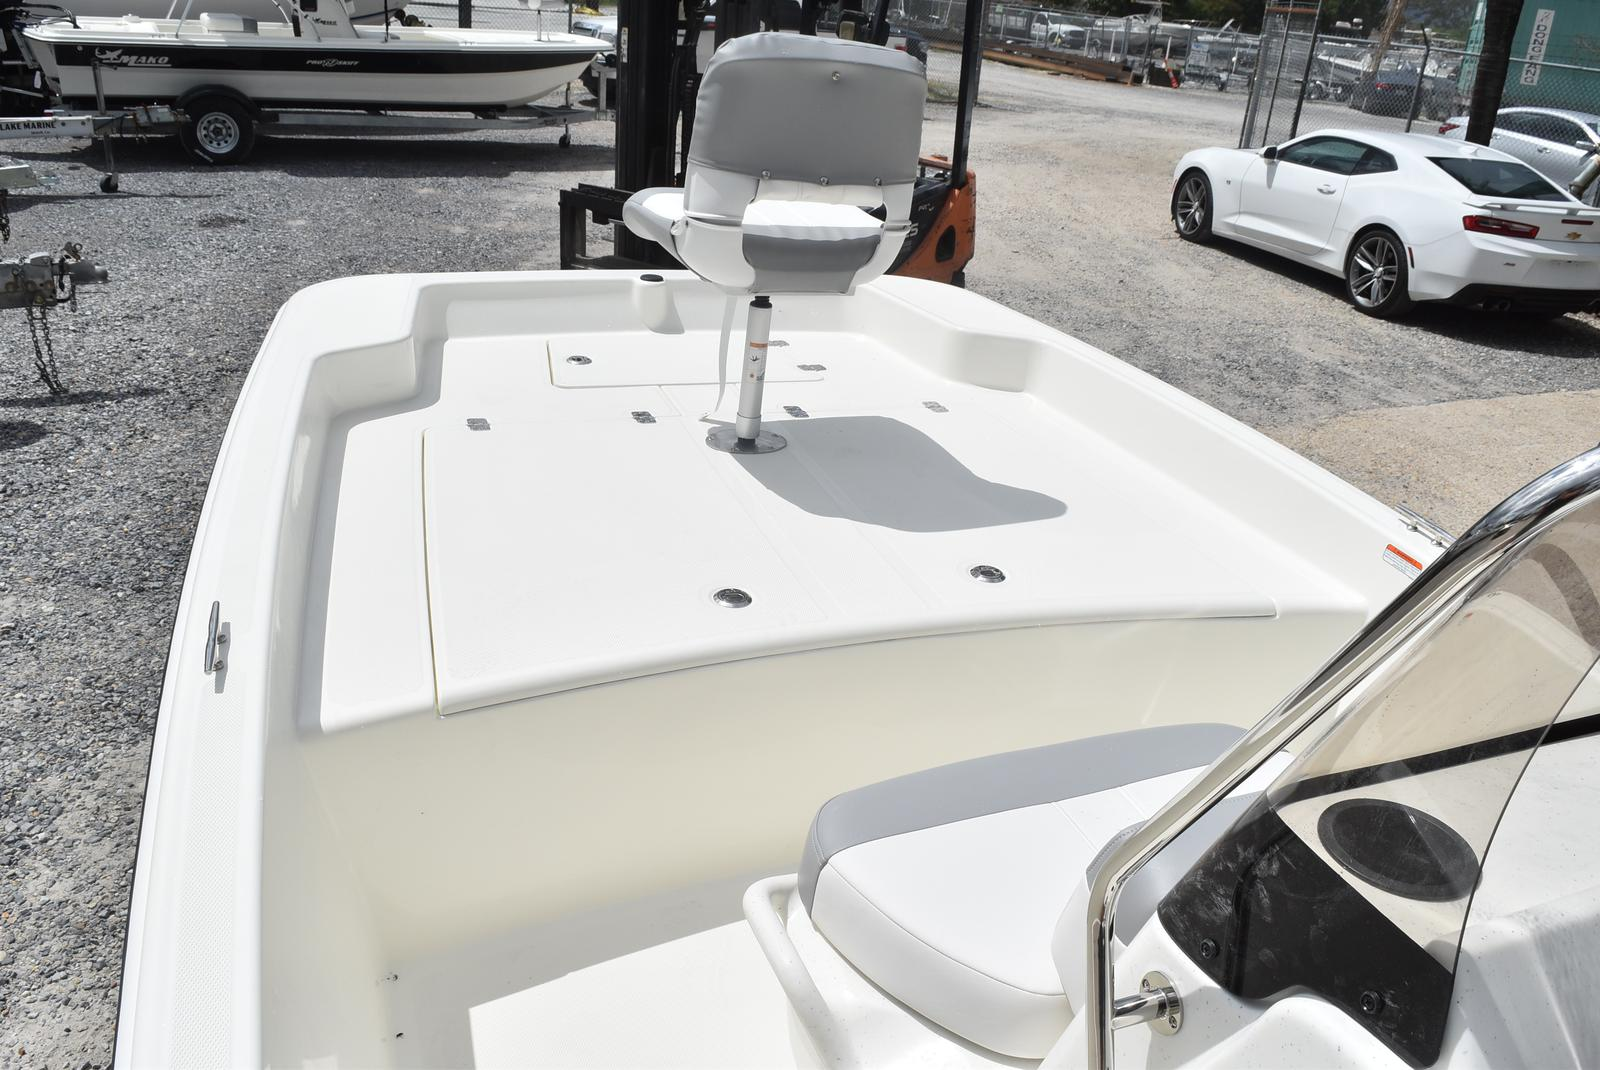 2020 Mako boat for sale, model of the boat is Pro Skiff 17, 75 ELPT & Image # 436 of 702